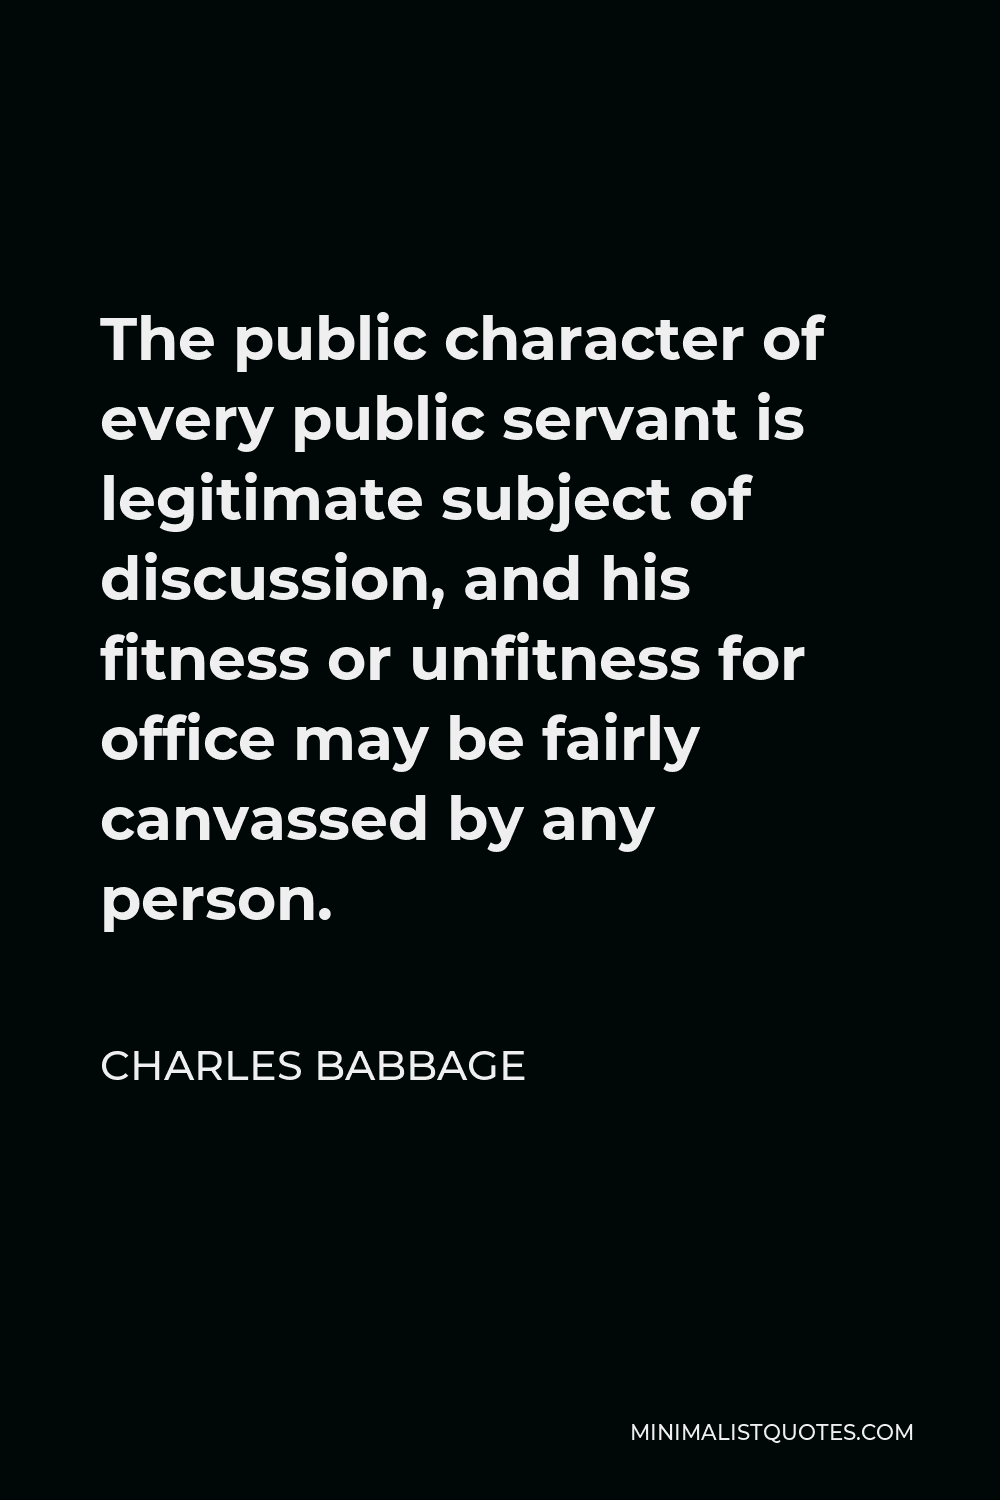 Charles Babbage Quote - The public character of every public servant is legitimate subject of discussion, and his fitness or unfitness for office may be fairly canvassed by any person.